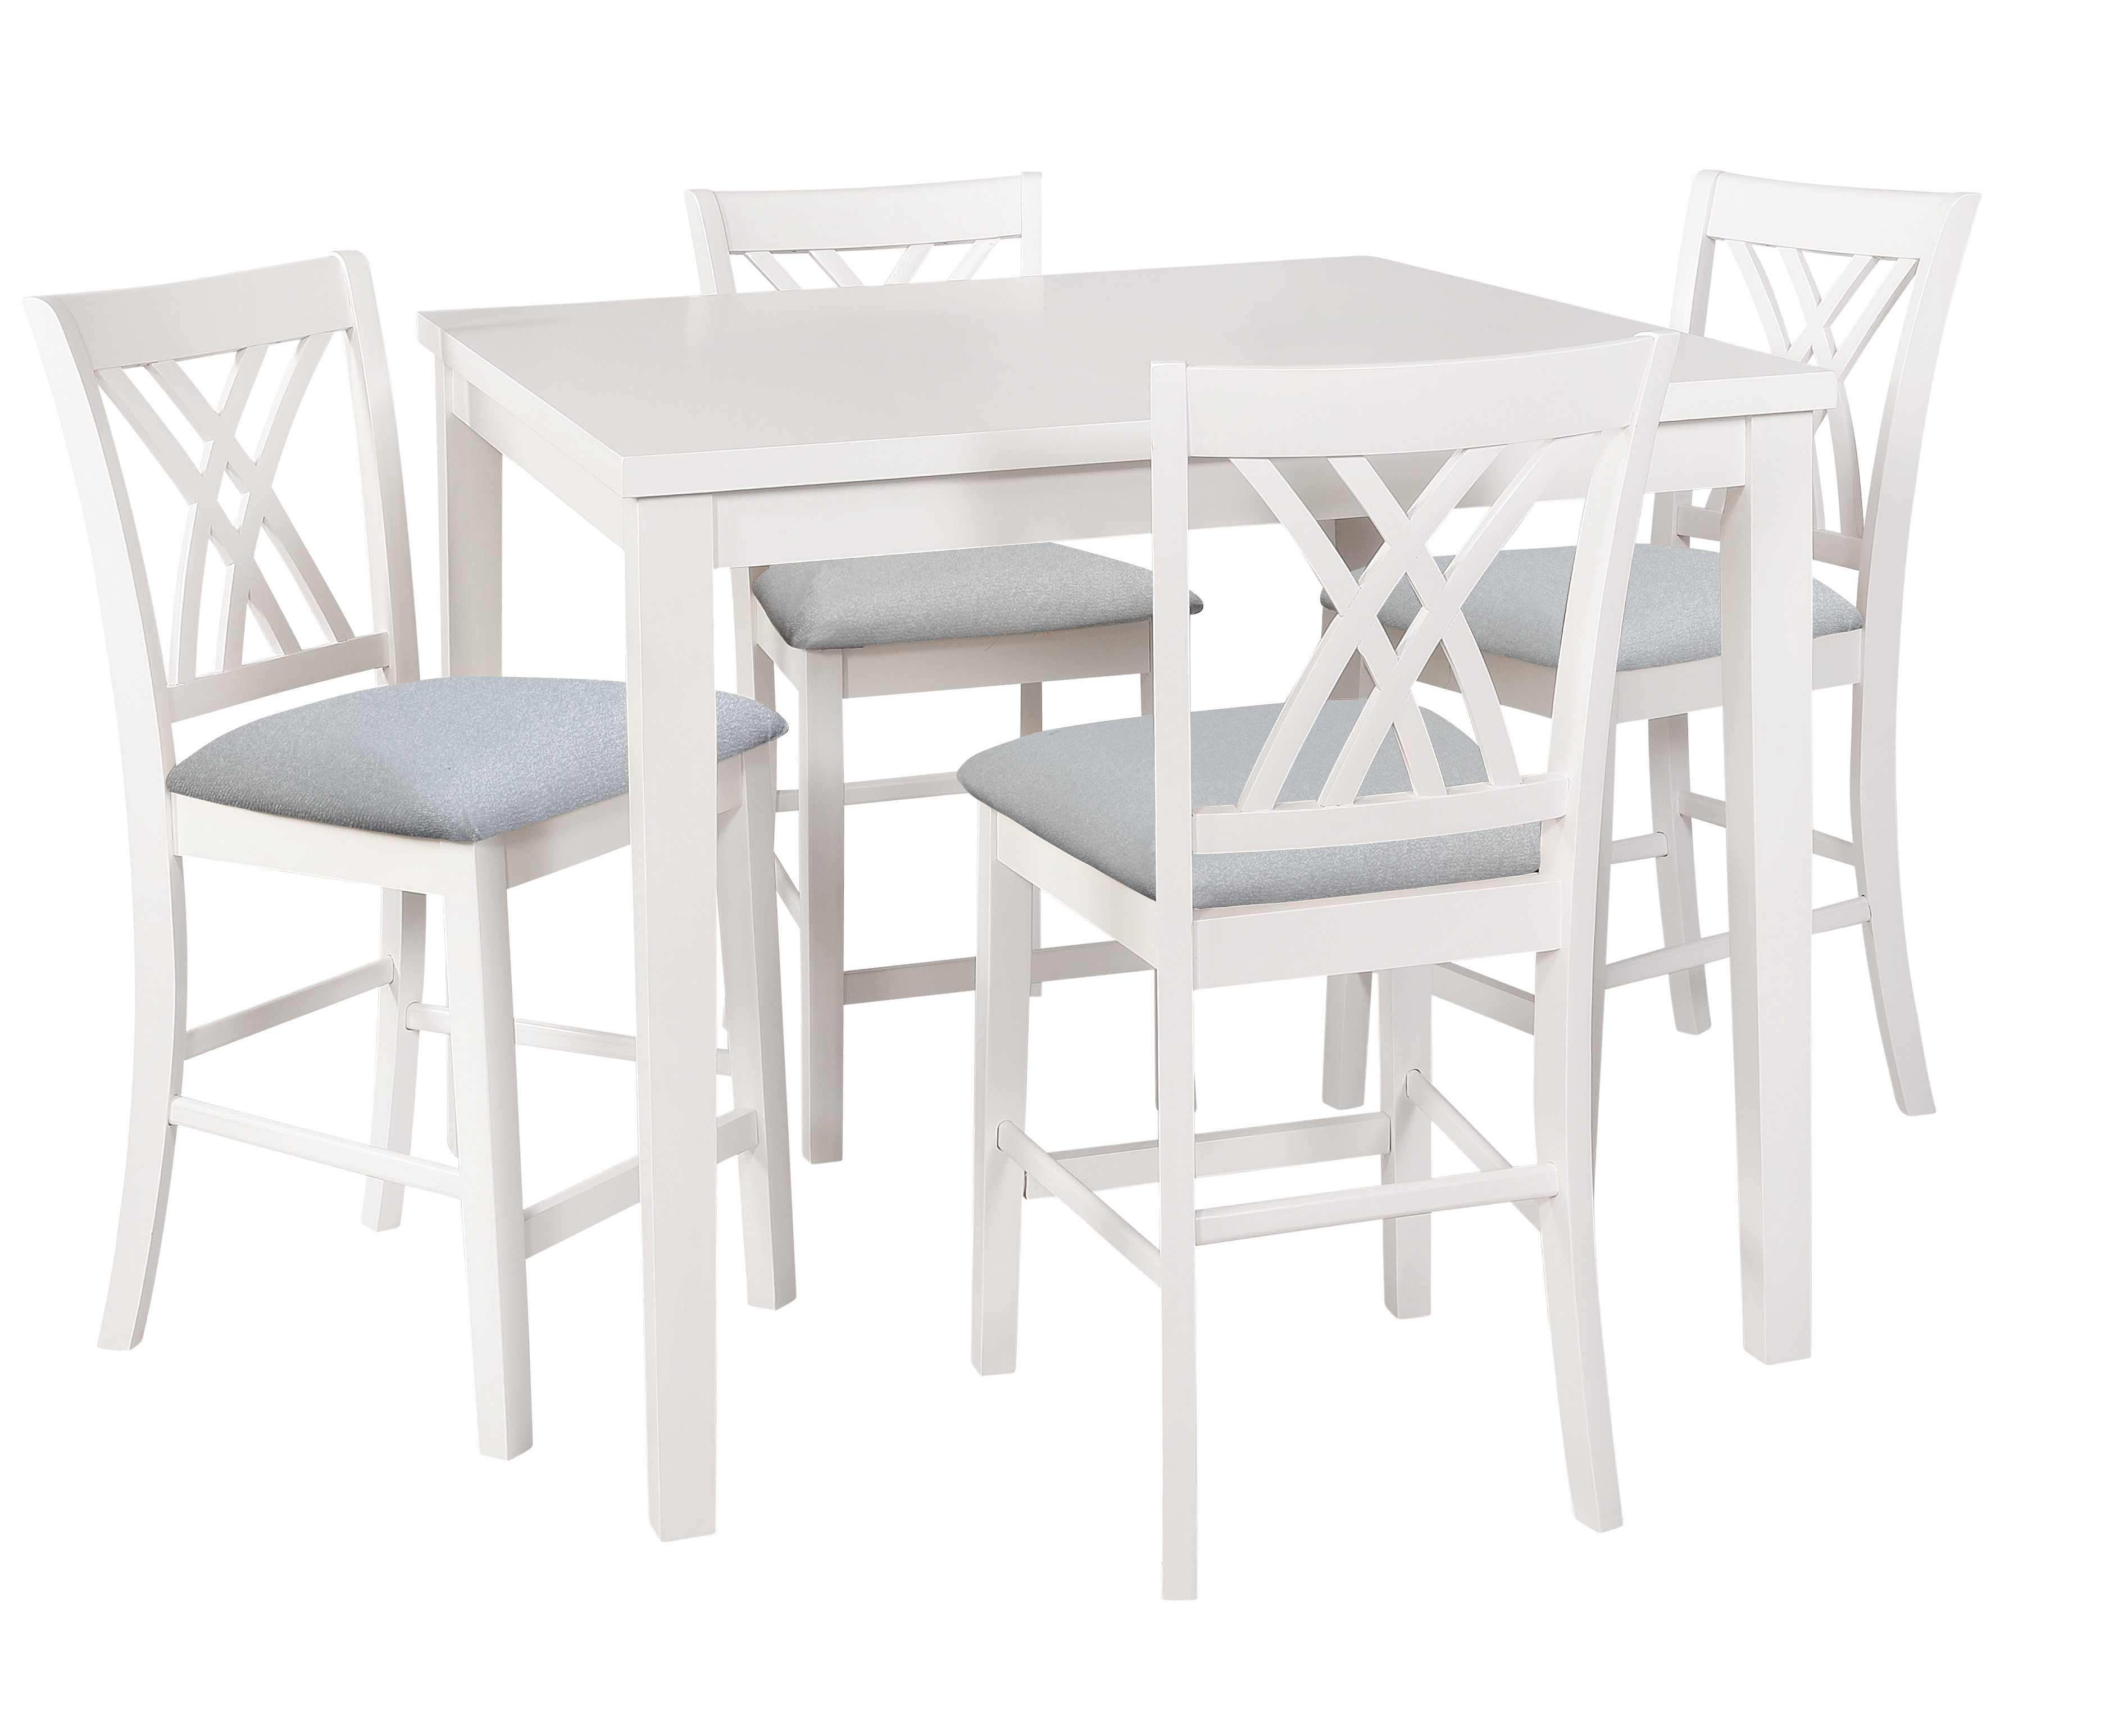 Highland Dunes Gisella 5 Piece Breakfast Nook Dining Set & Reviews For Most Recently Released 5 Piece Breakfast Nook Dining Sets (#11 of 20)